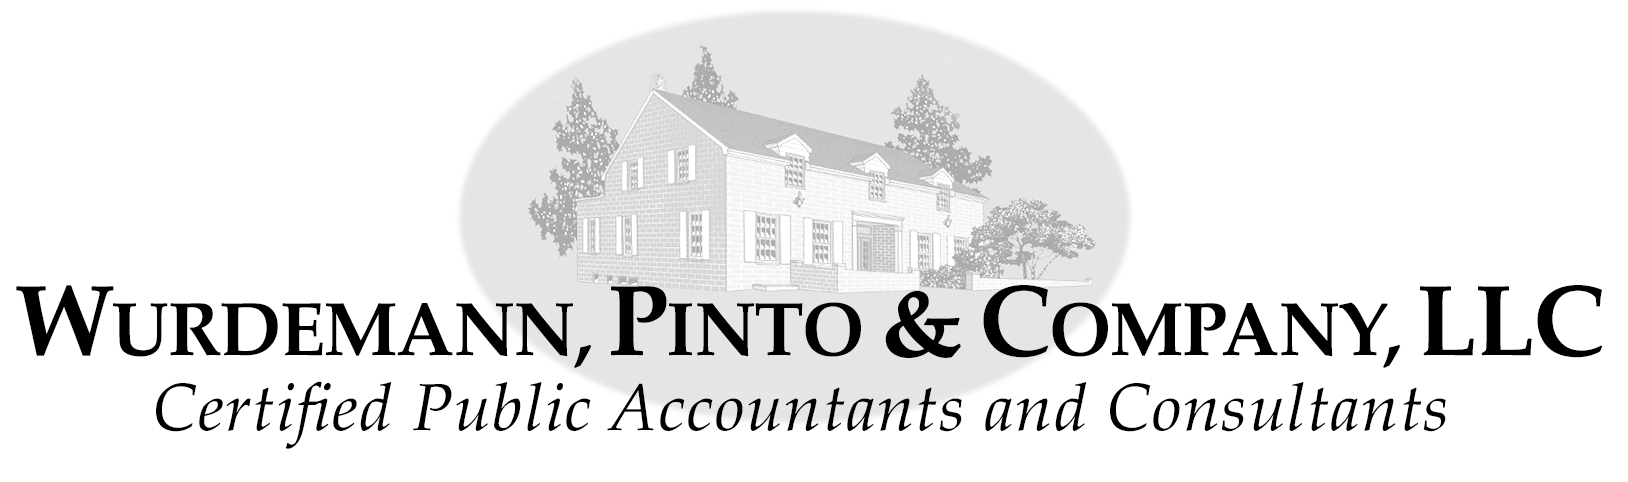 Hackensack, NJ Accounting Firm | Privacy Policy | Wurdemann, Pinto & Co. LLC